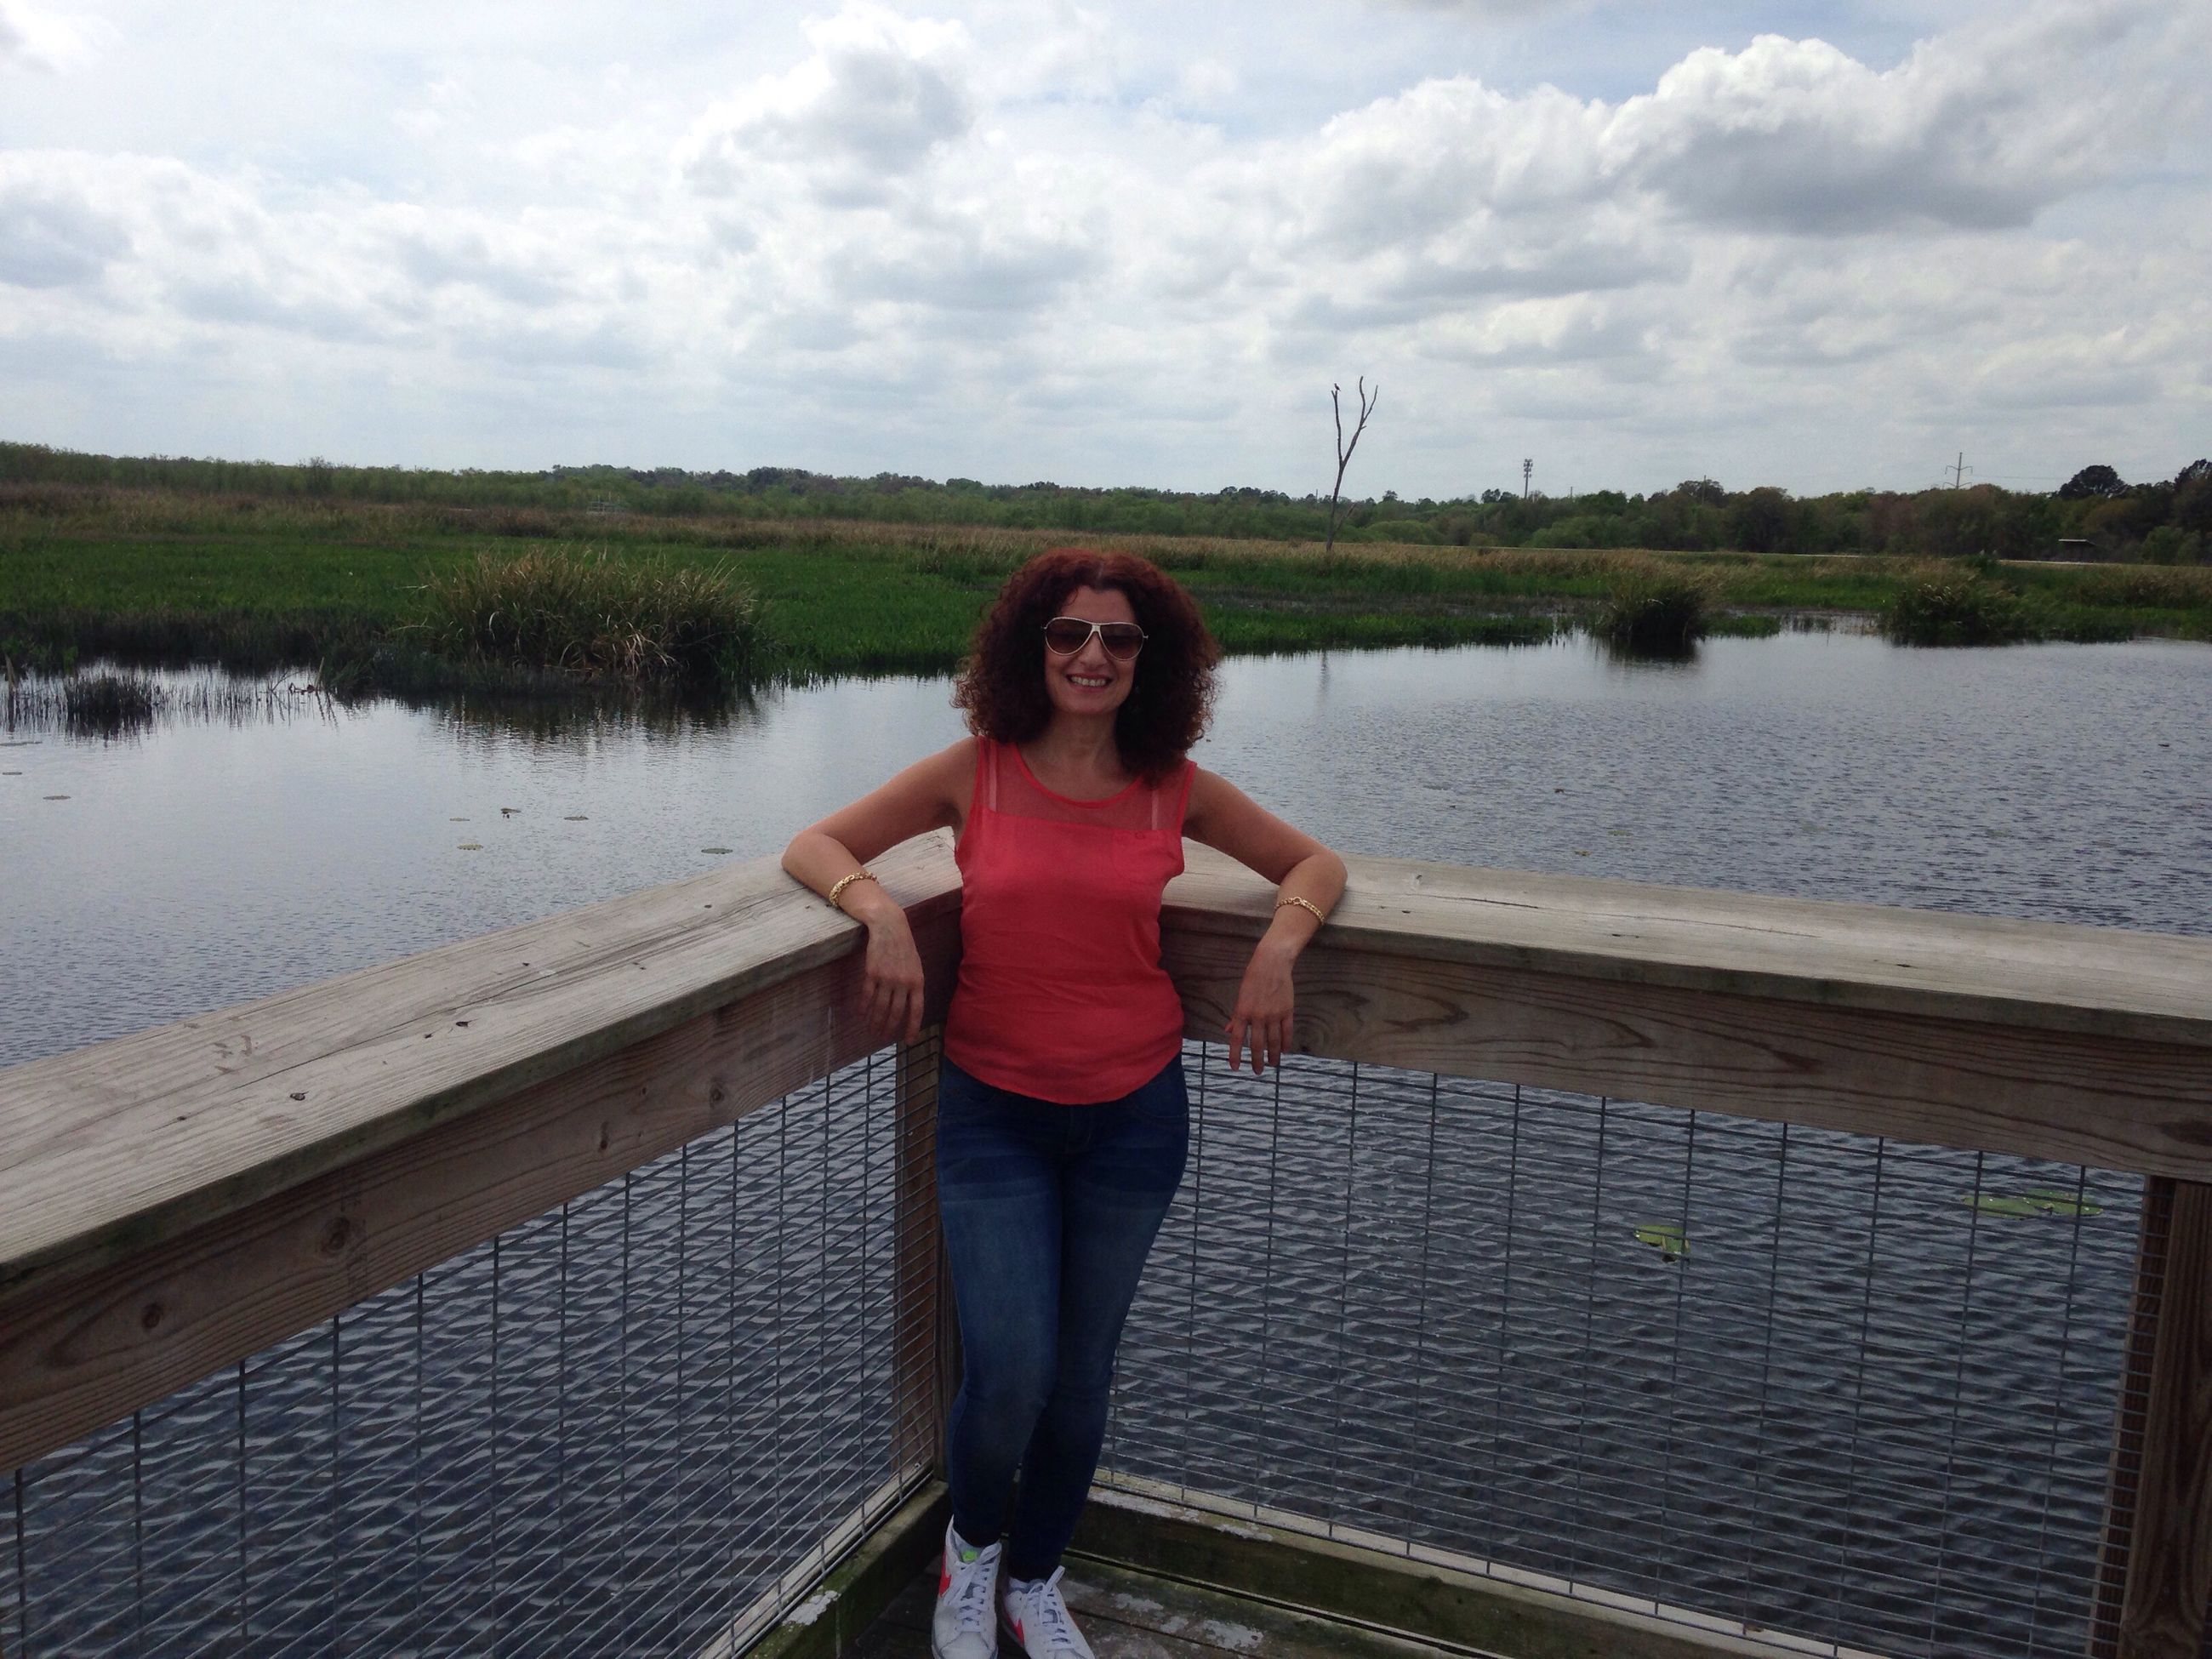 water, standing, casual clothing, person, sky, young adult, lifestyles, looking at camera, full length, portrait, leisure activity, front view, railing, lake, young women, three quarter length, smiling, cloud - sky